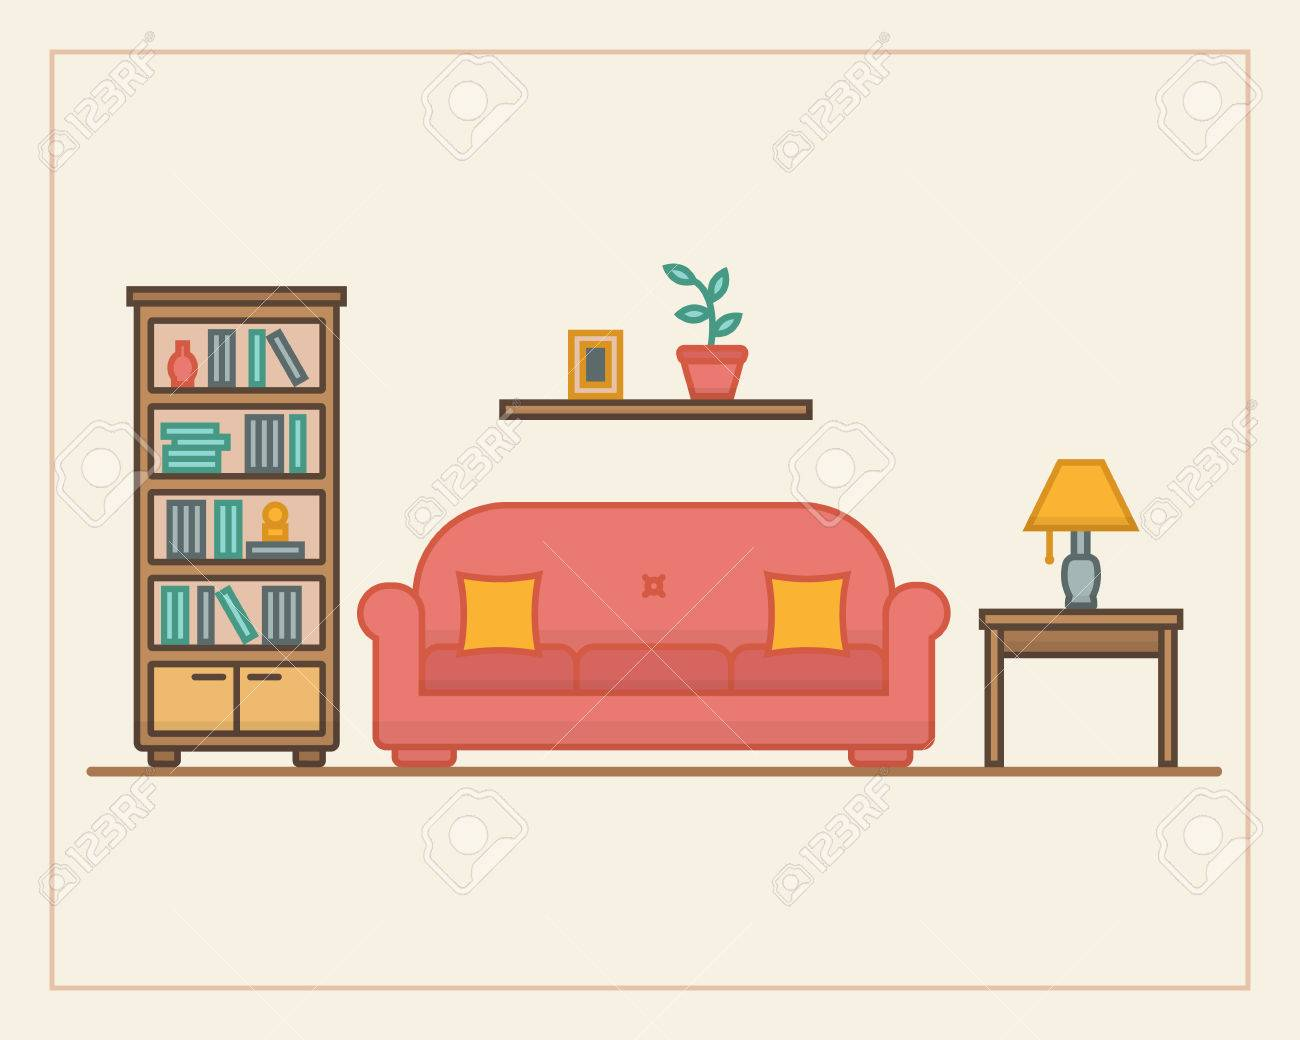 living room furniture clipart. living room with furniture and long shadows. flat line style vector illustration. stock clipart